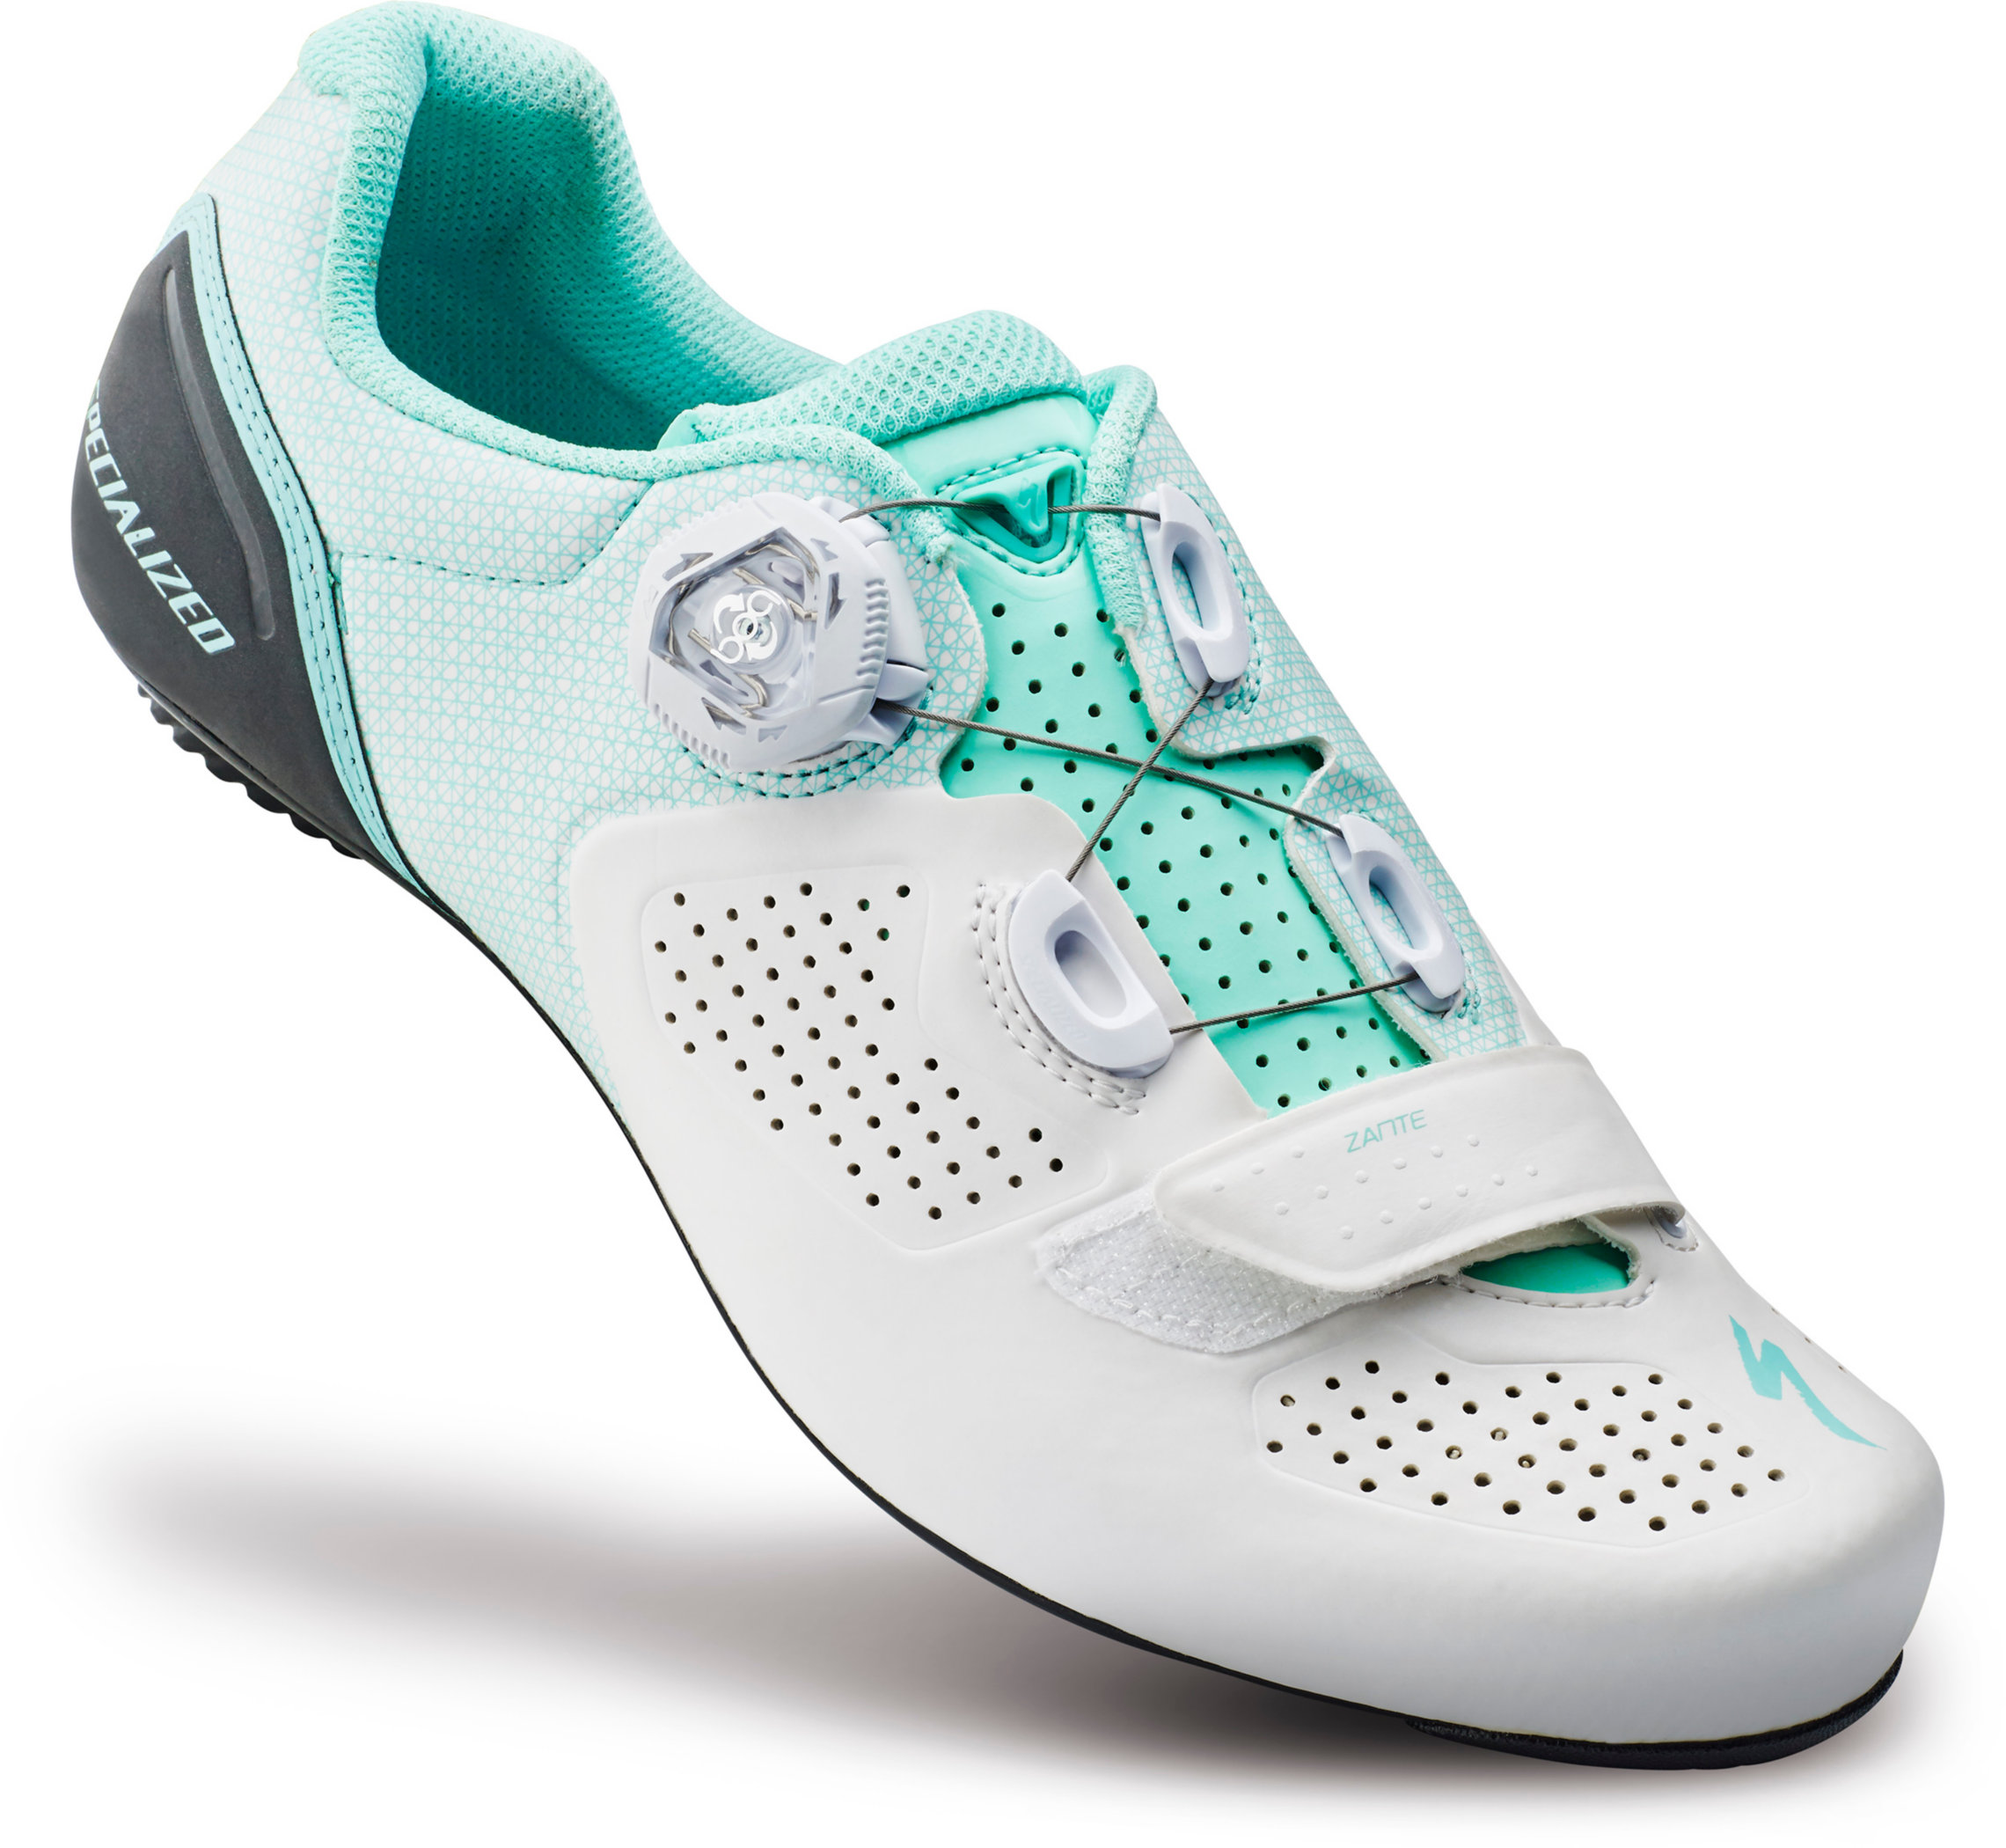 SPECIALIZED ZANTE RD SHOE WMN WHT/LTTUR 39/8 - Bike Zone